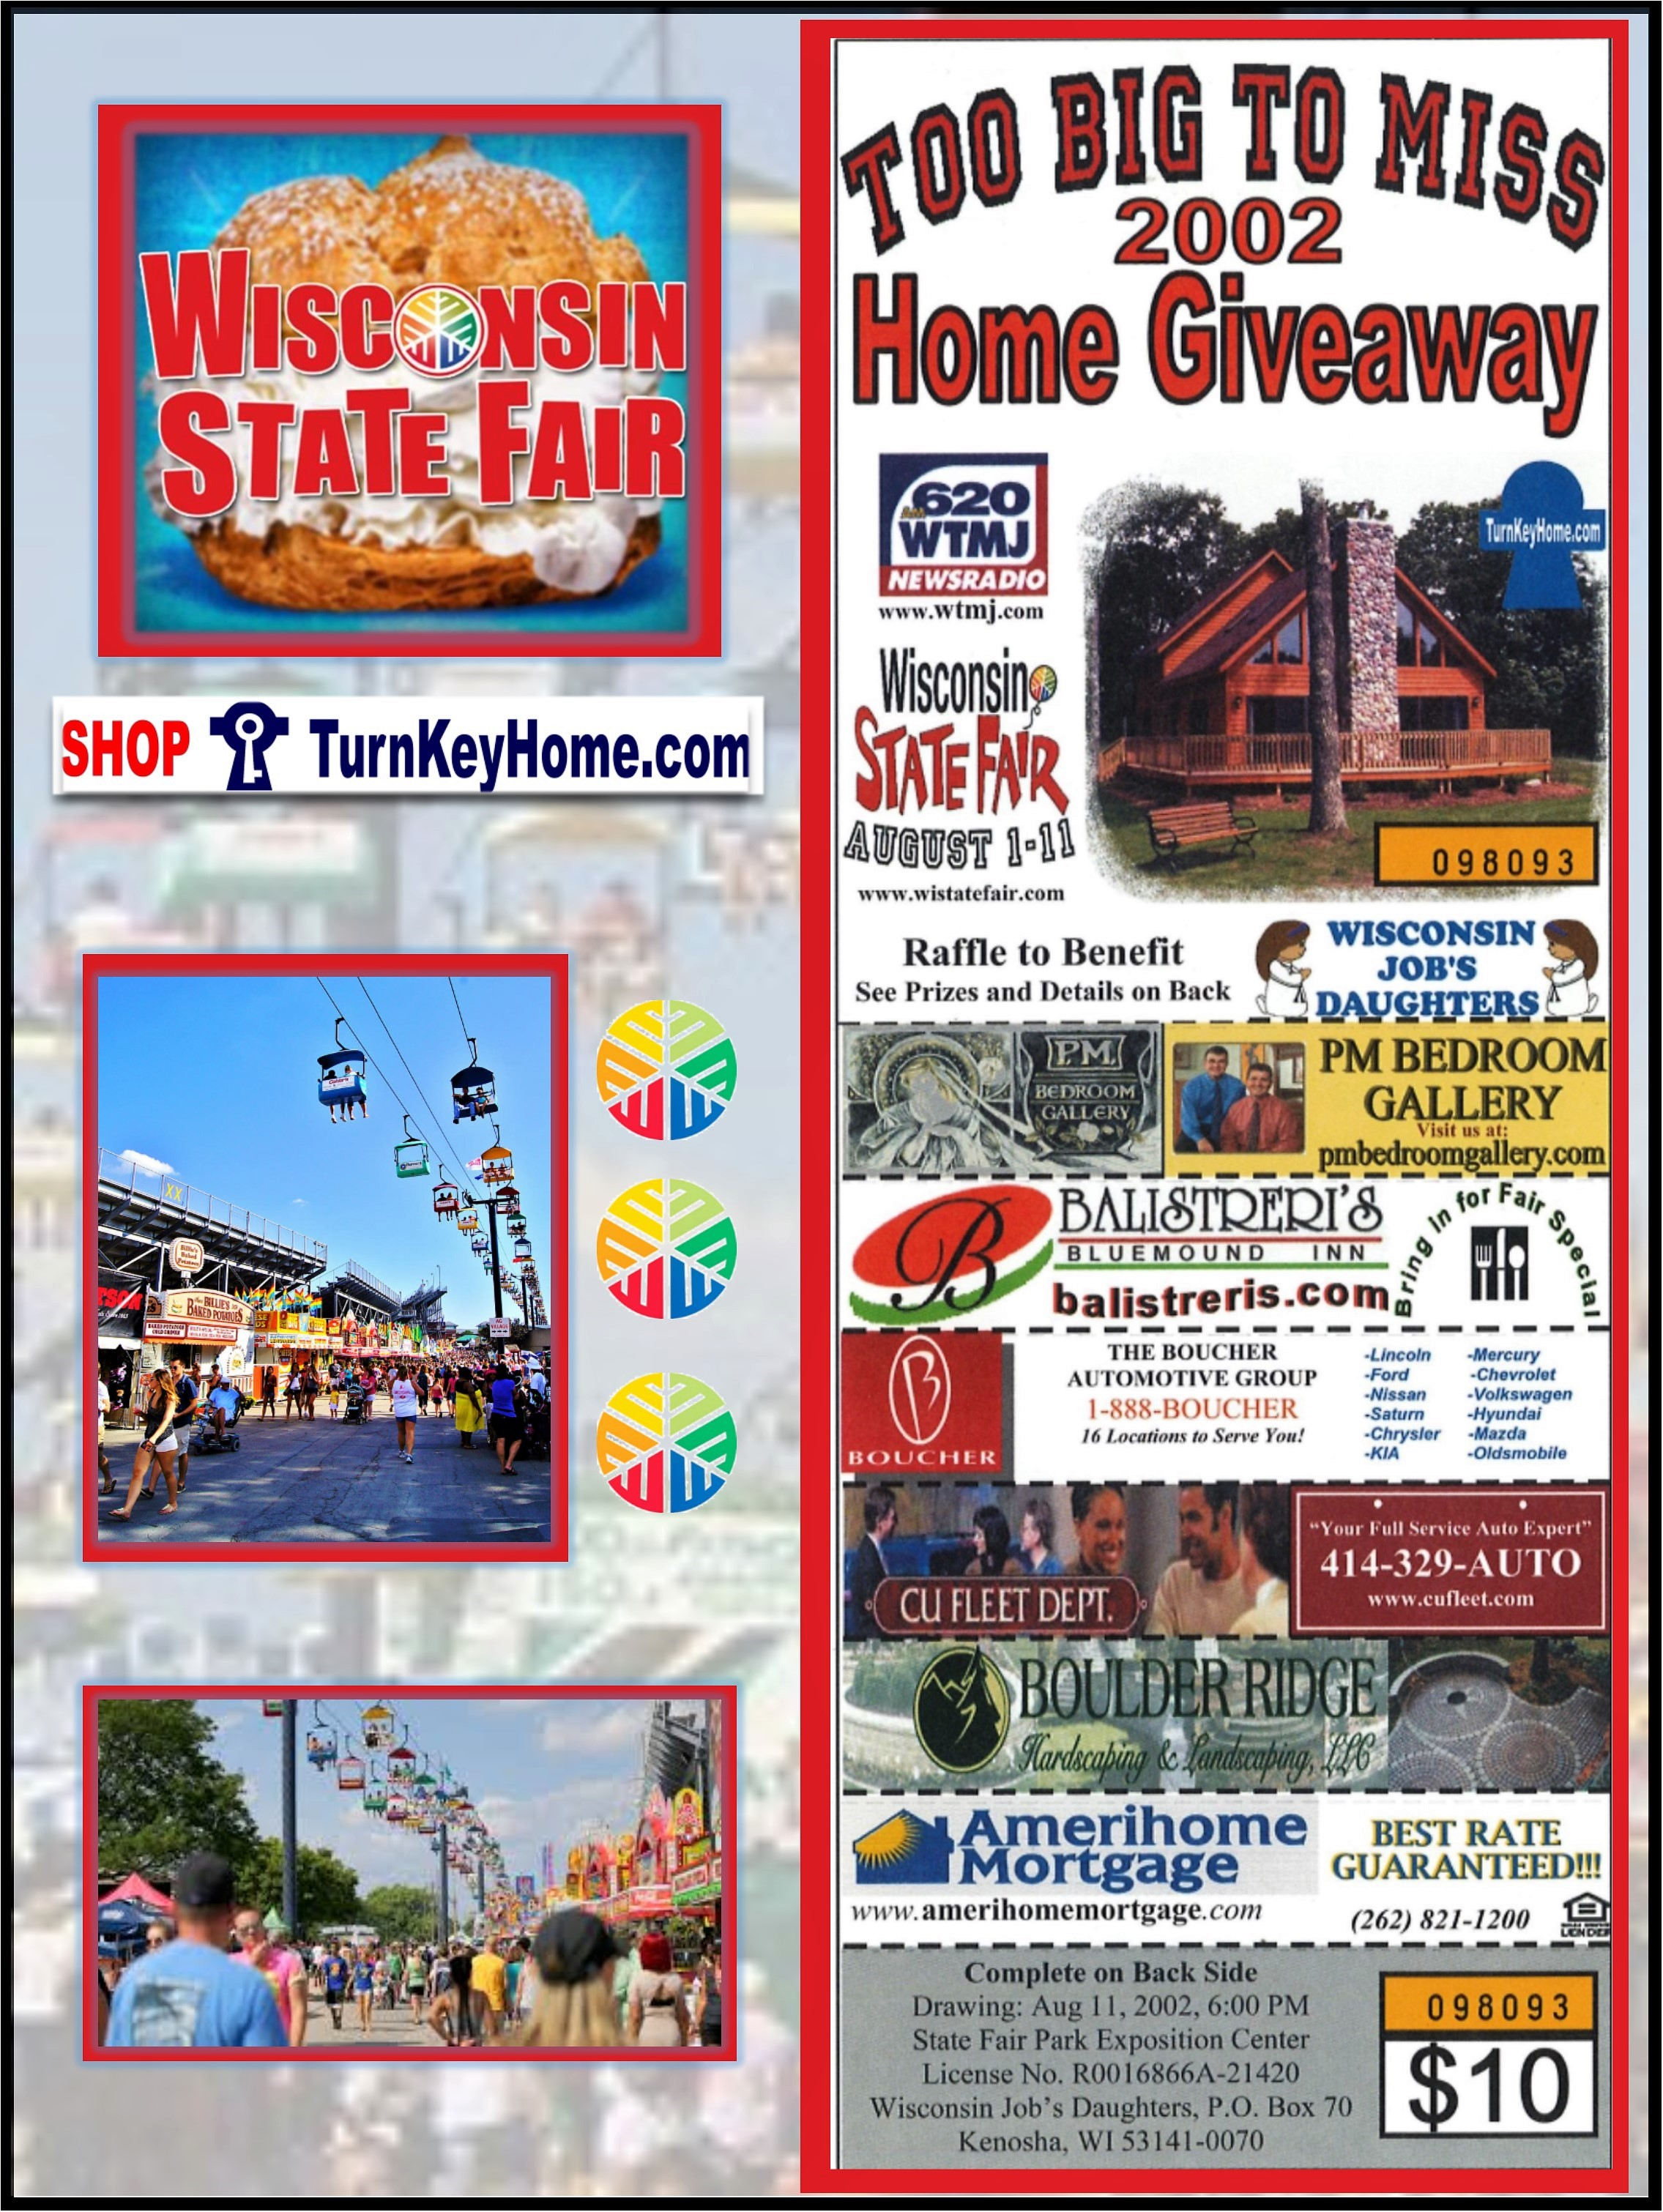 Wisconsin State Fair Turnkeyhome Com Modular Home Giveaway